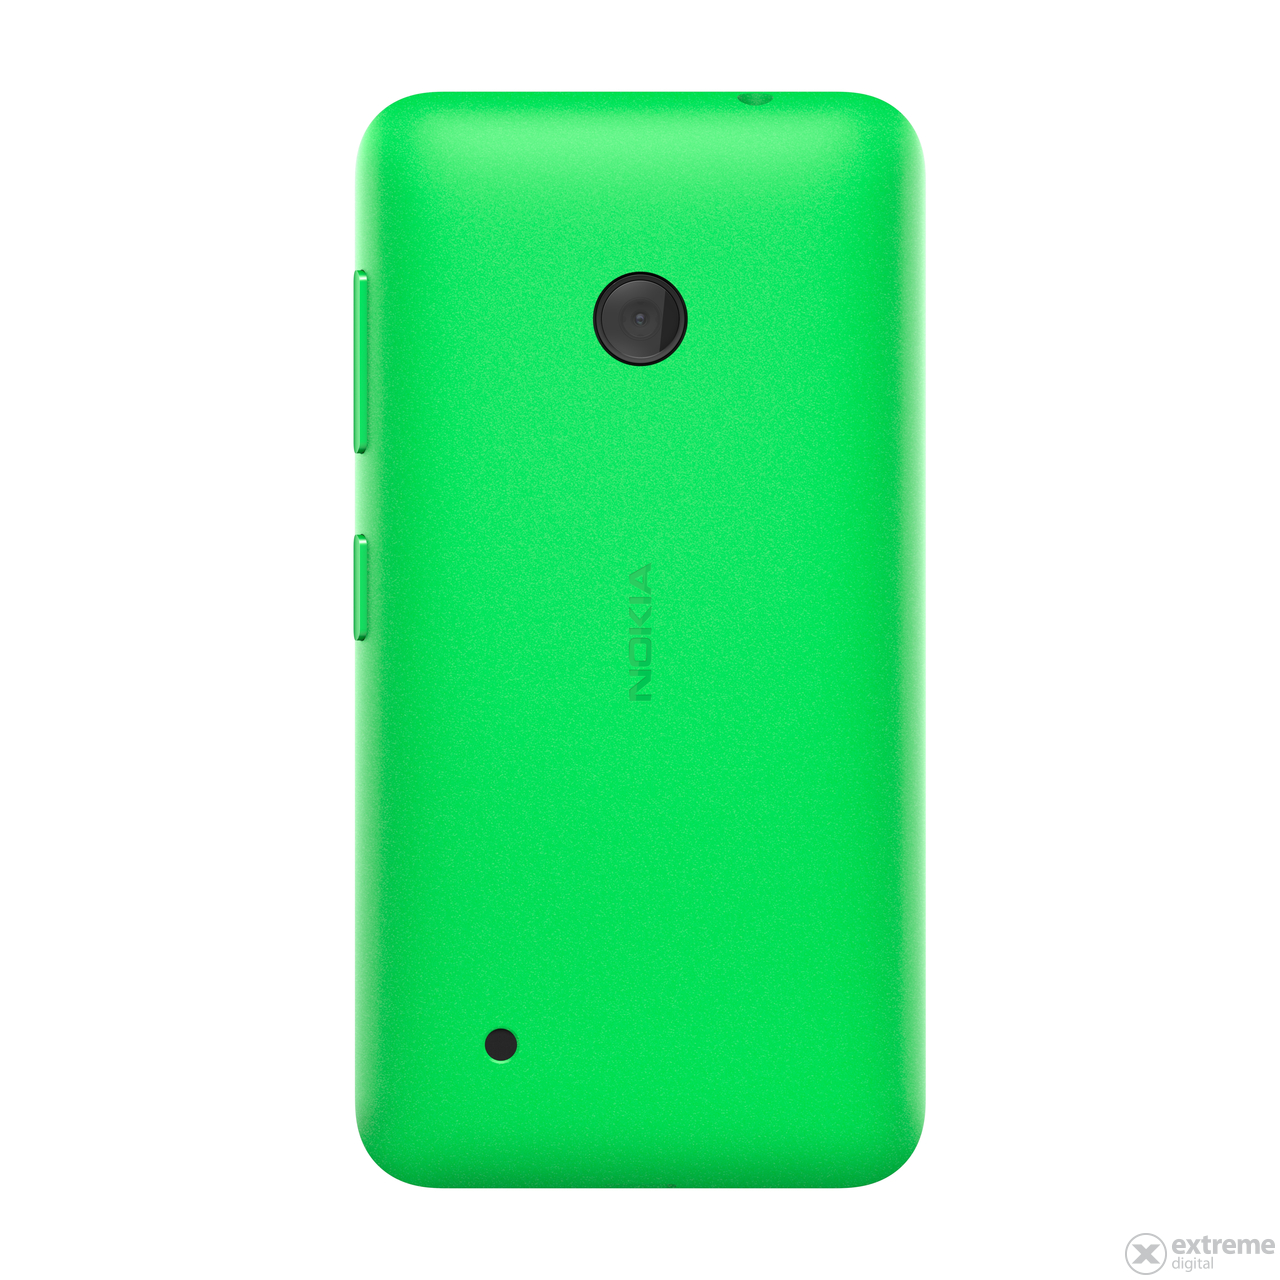 Nokia Lumia 530 (Dual SIM) pametni telefon, Green (Windows Phone)